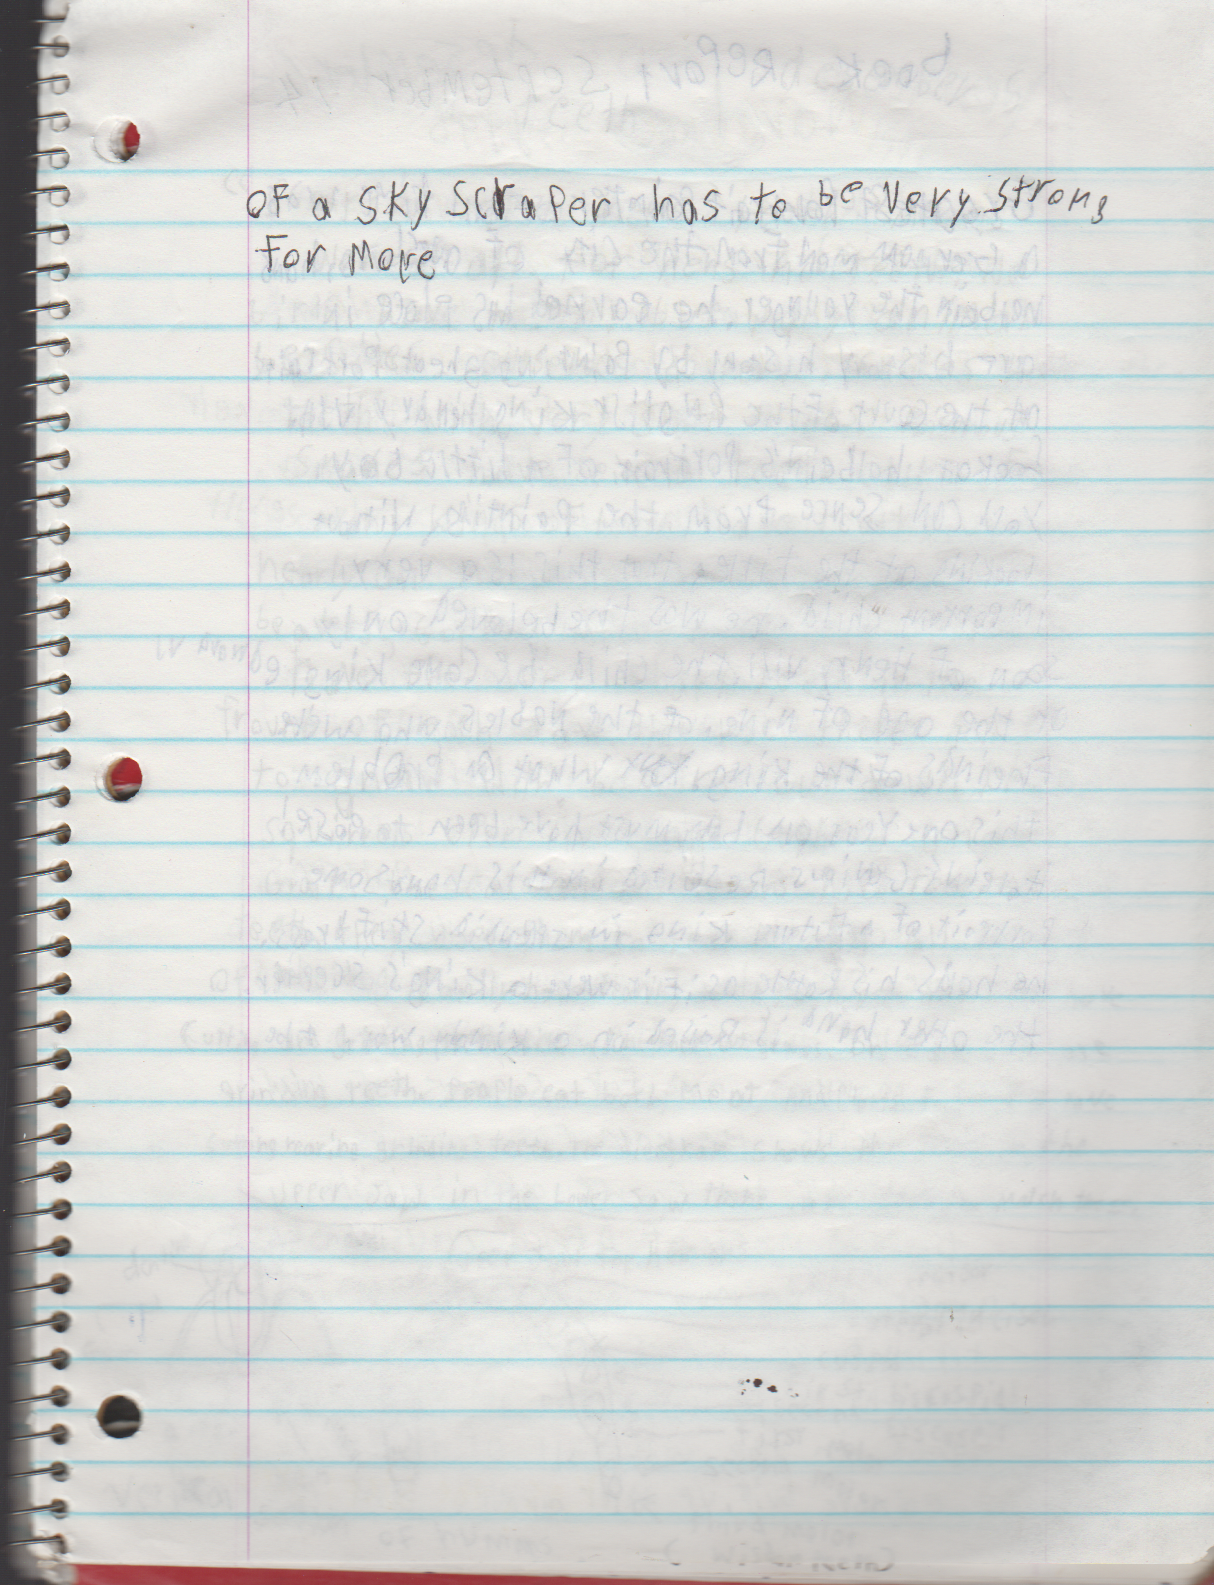 1996-08-18 - Saturday - 11 yr old Joey Arnold's School Book, dates through to 1998 apx, mostly 96, Writings, Drawings, Etc-074.png